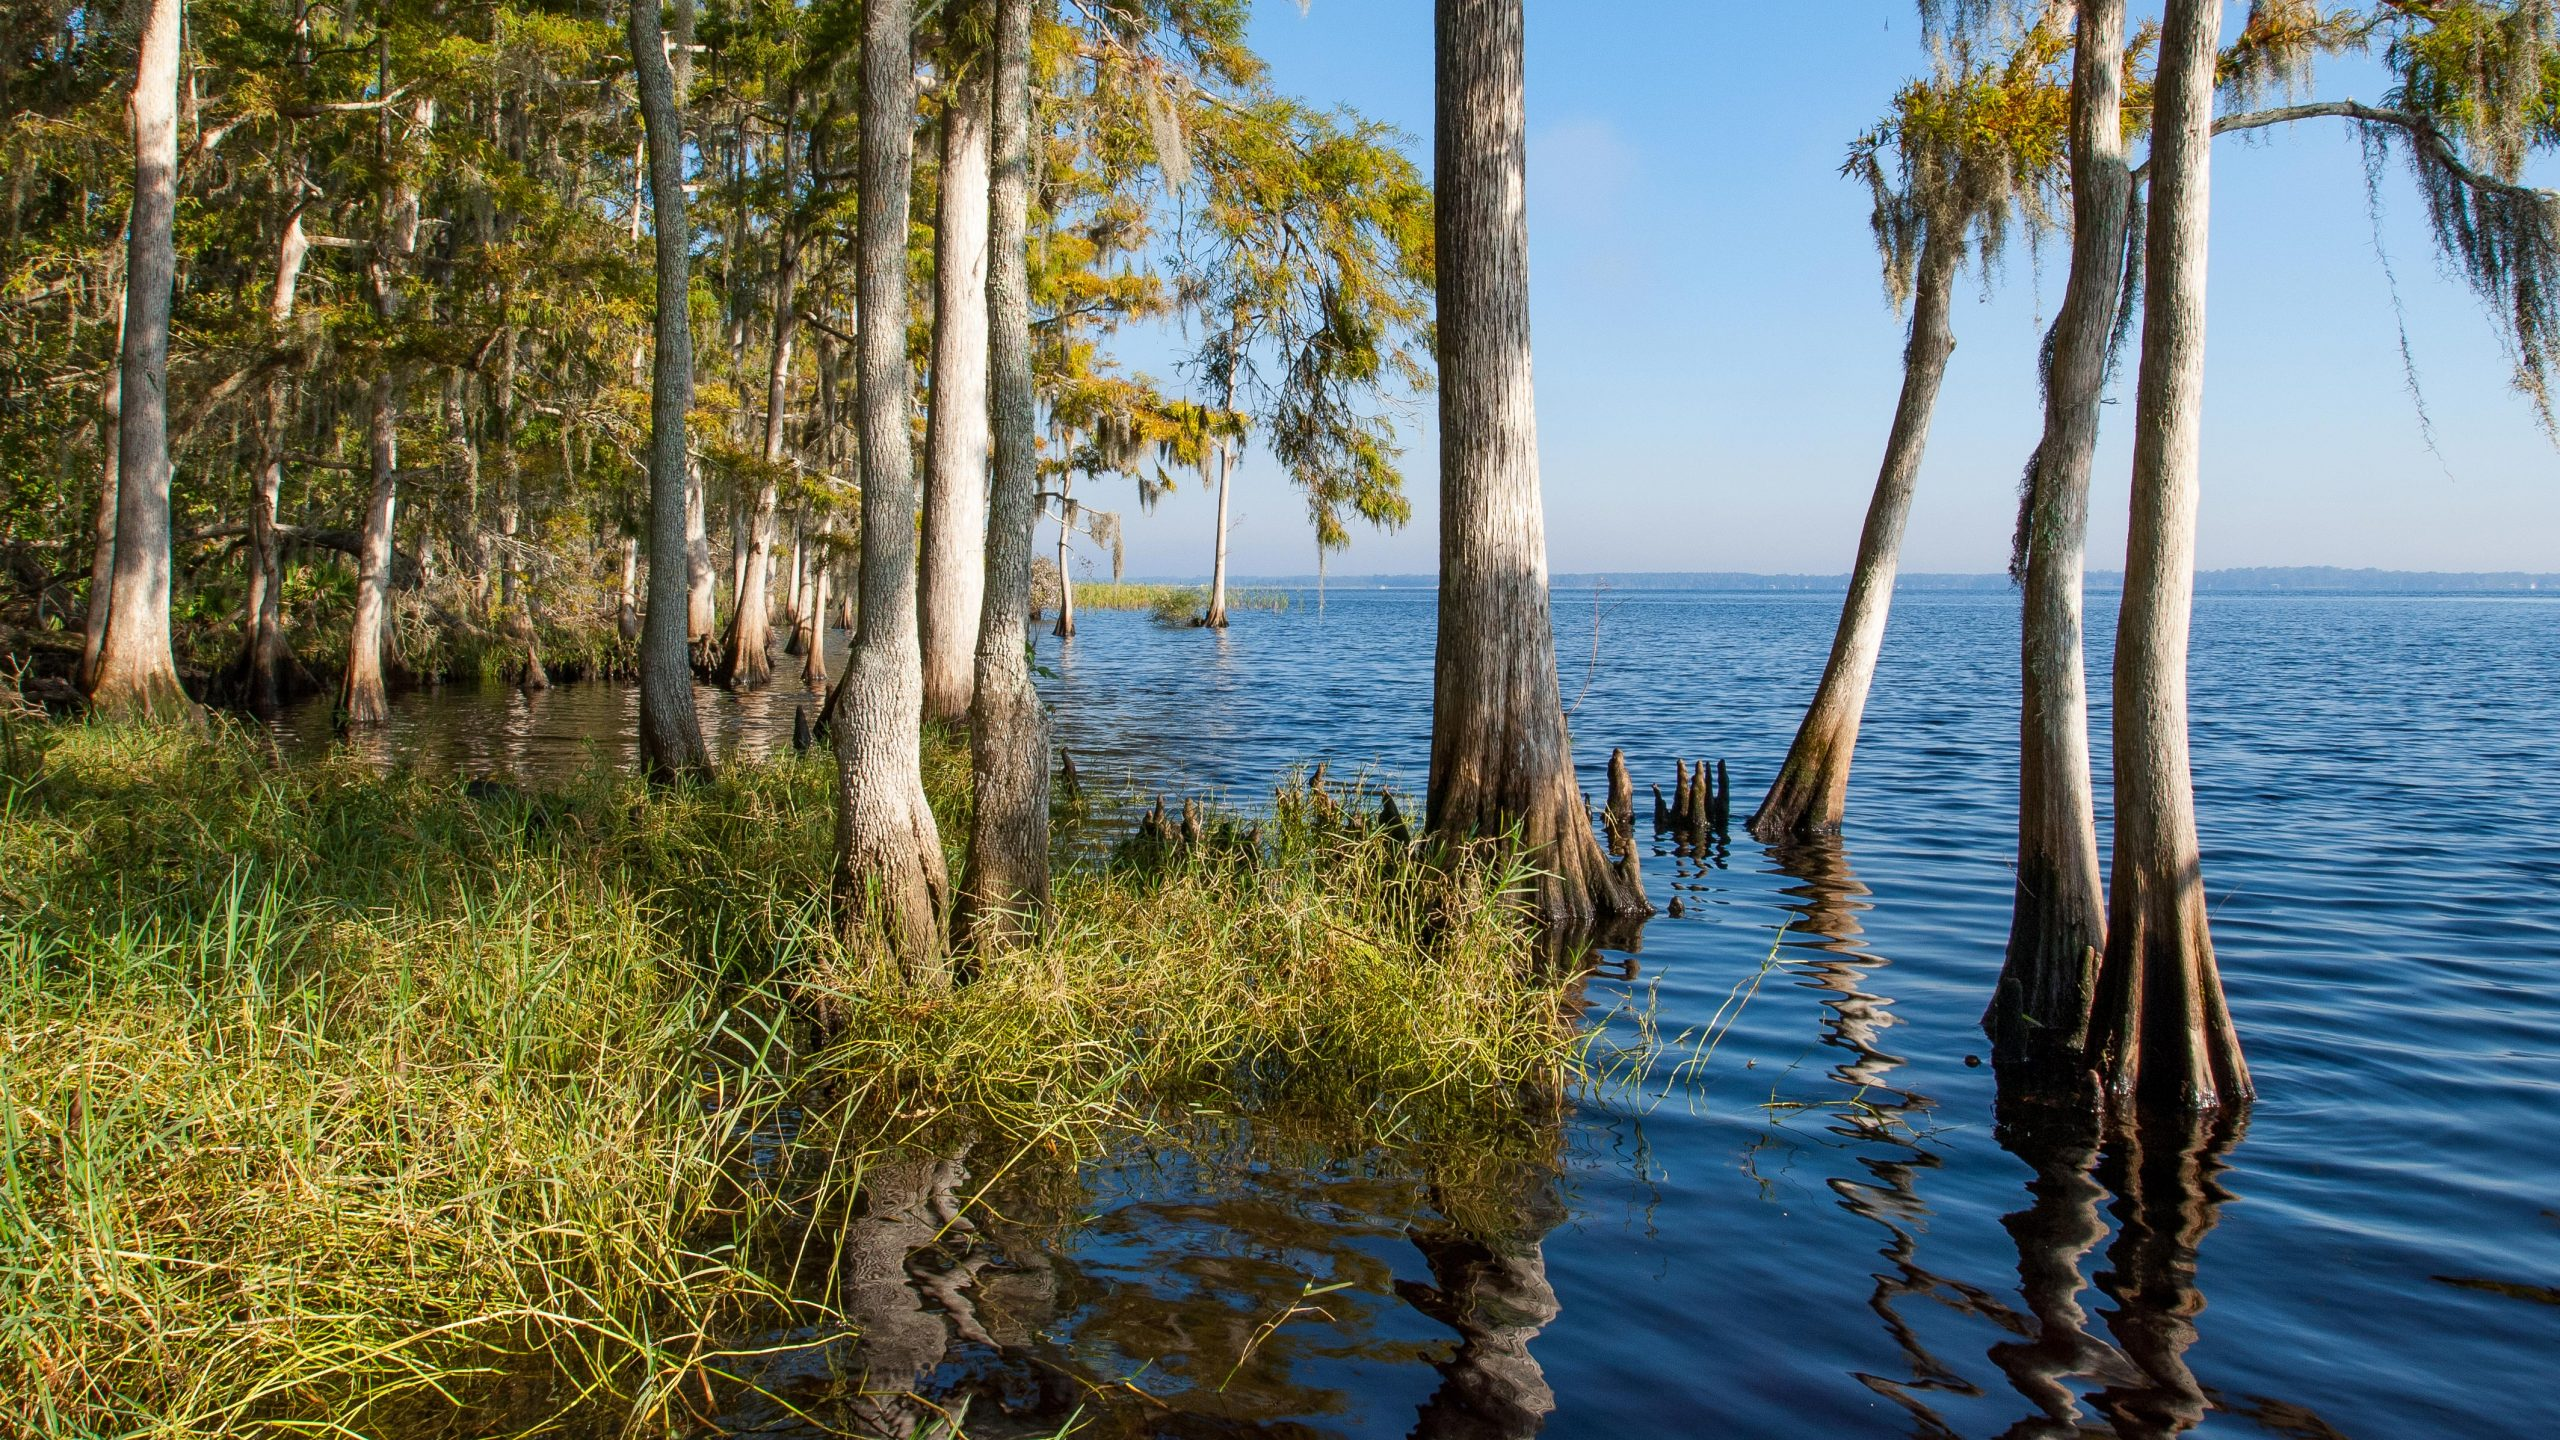 Cypress trees by the Bayard shore